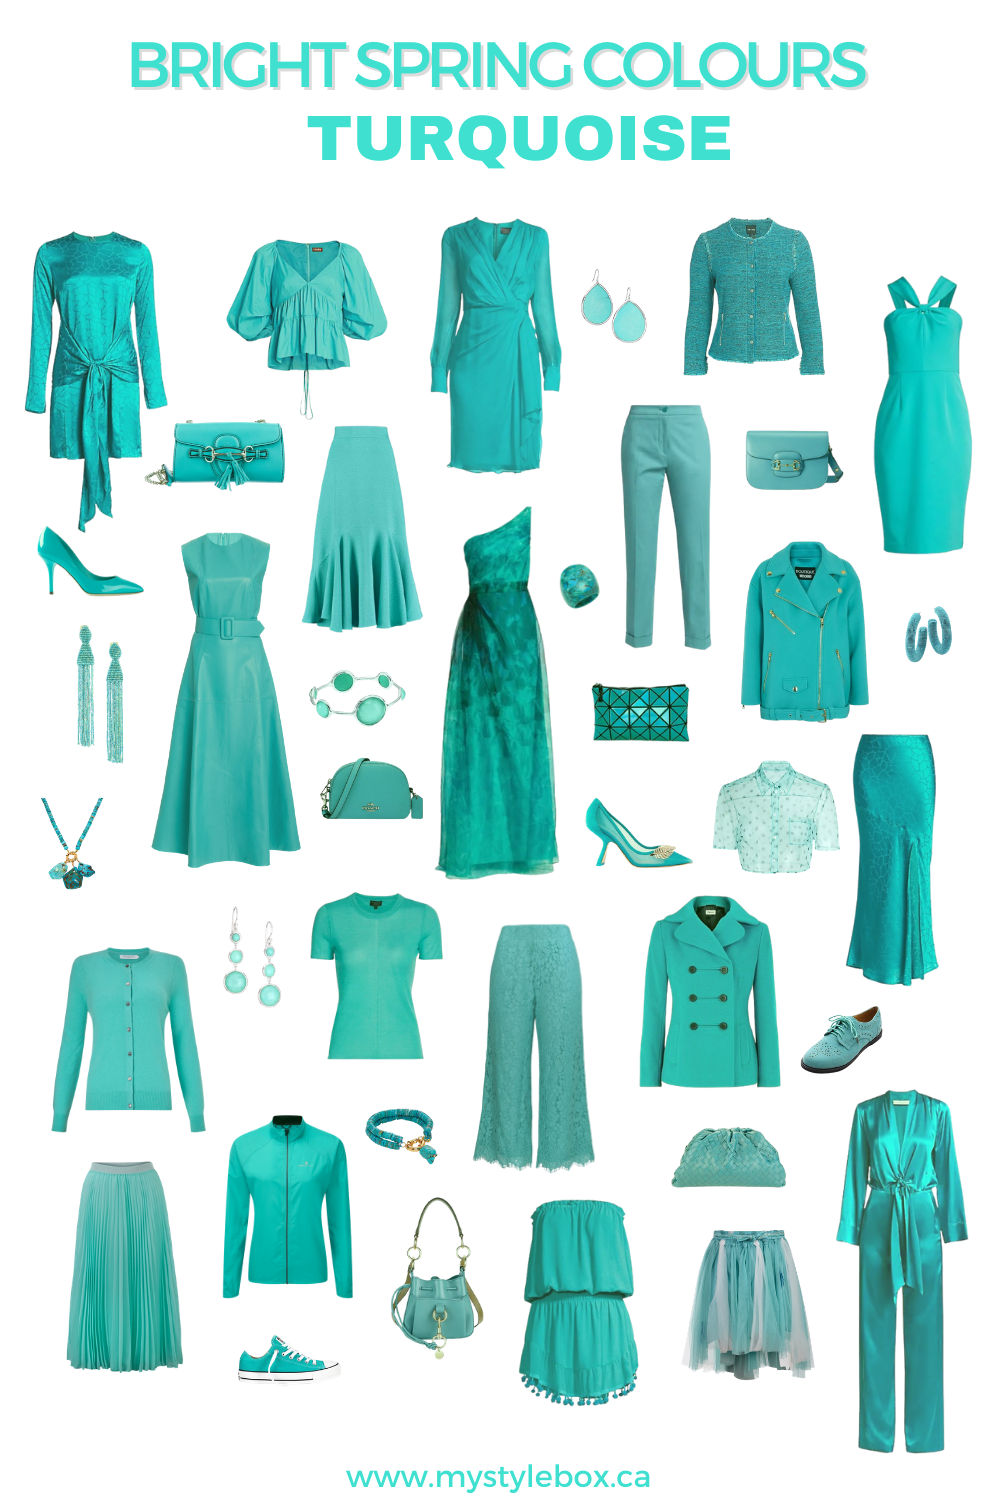 BRIGHT SPRING COLOURS TURQUOISE